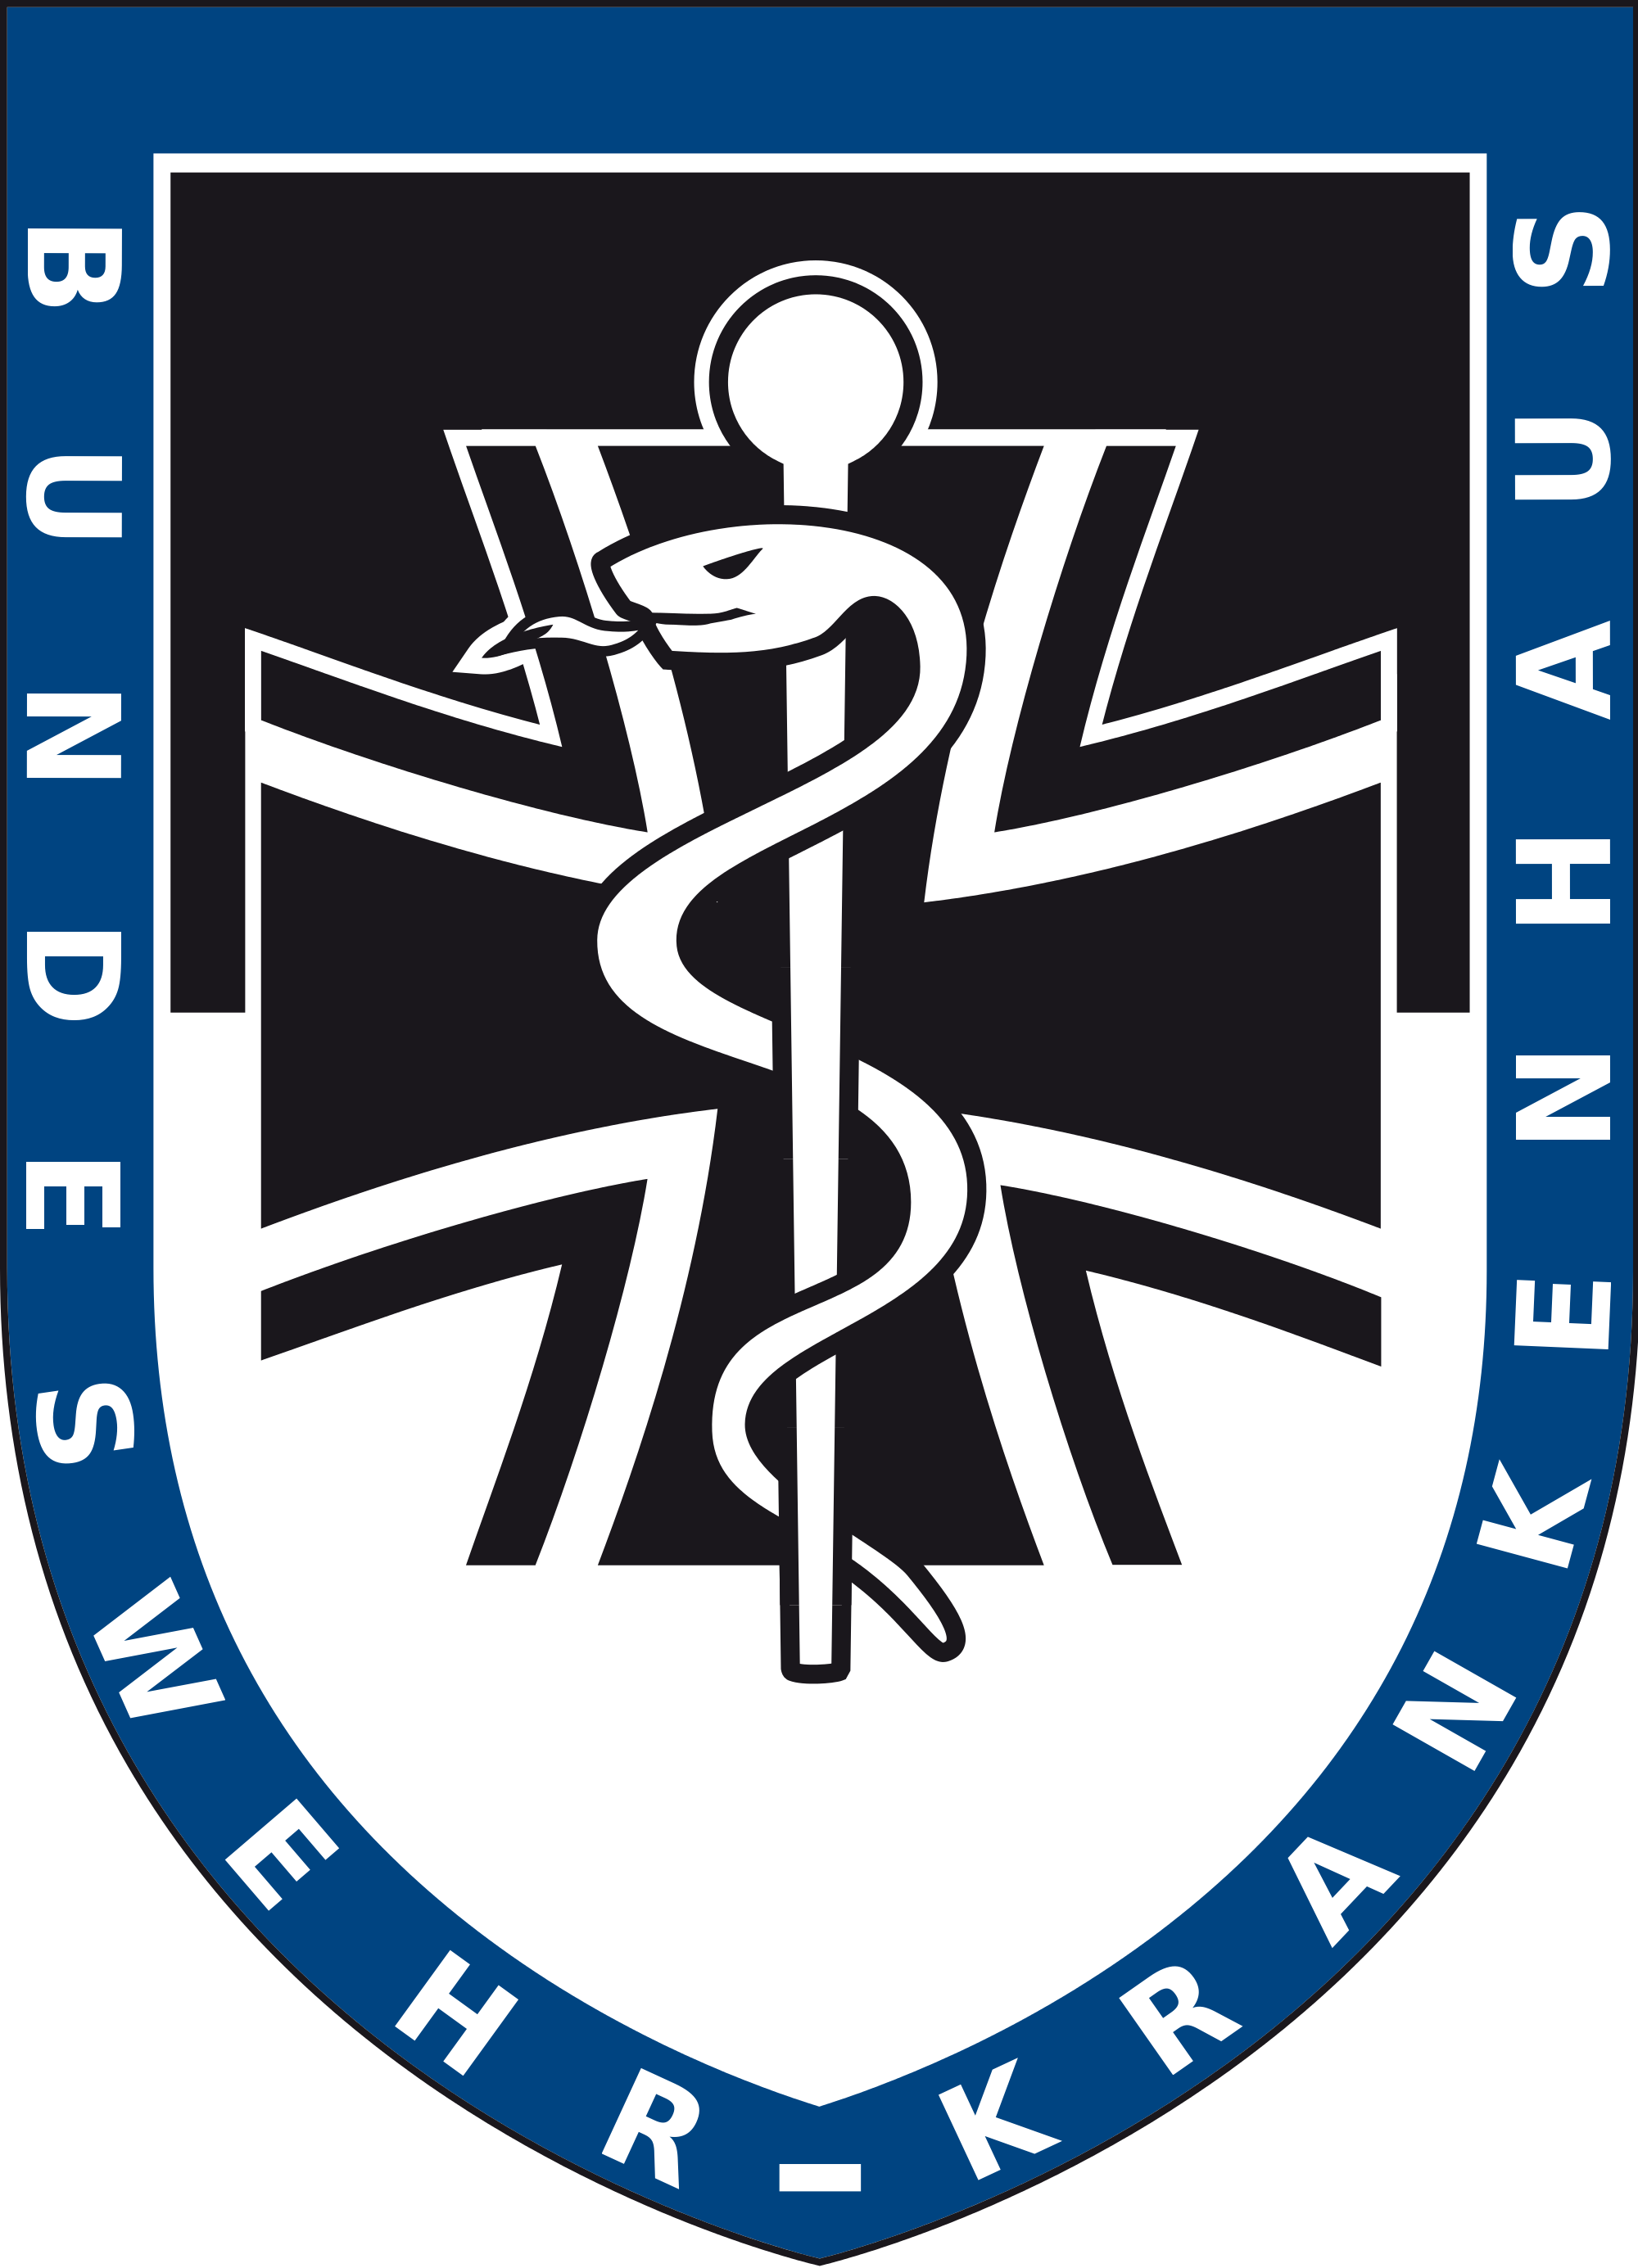 File:BwKrhs Ulm.svg.